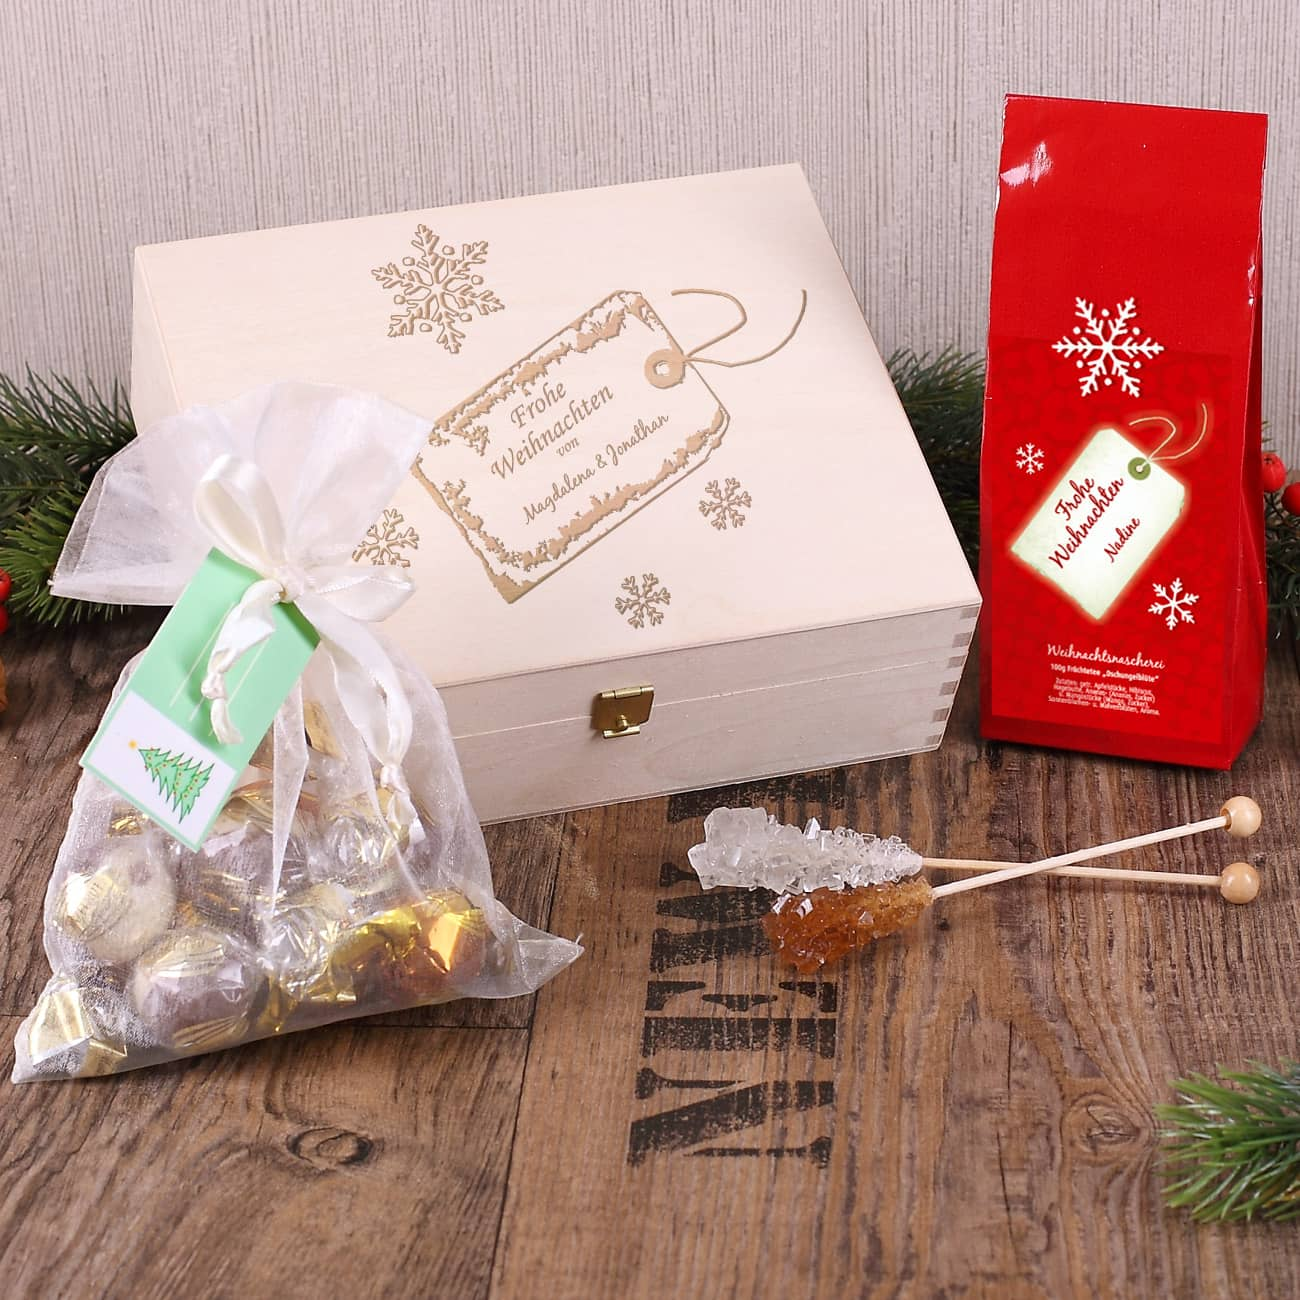 geschenkbox zu weihnachten mit tee und pralinen. Black Bedroom Furniture Sets. Home Design Ideas